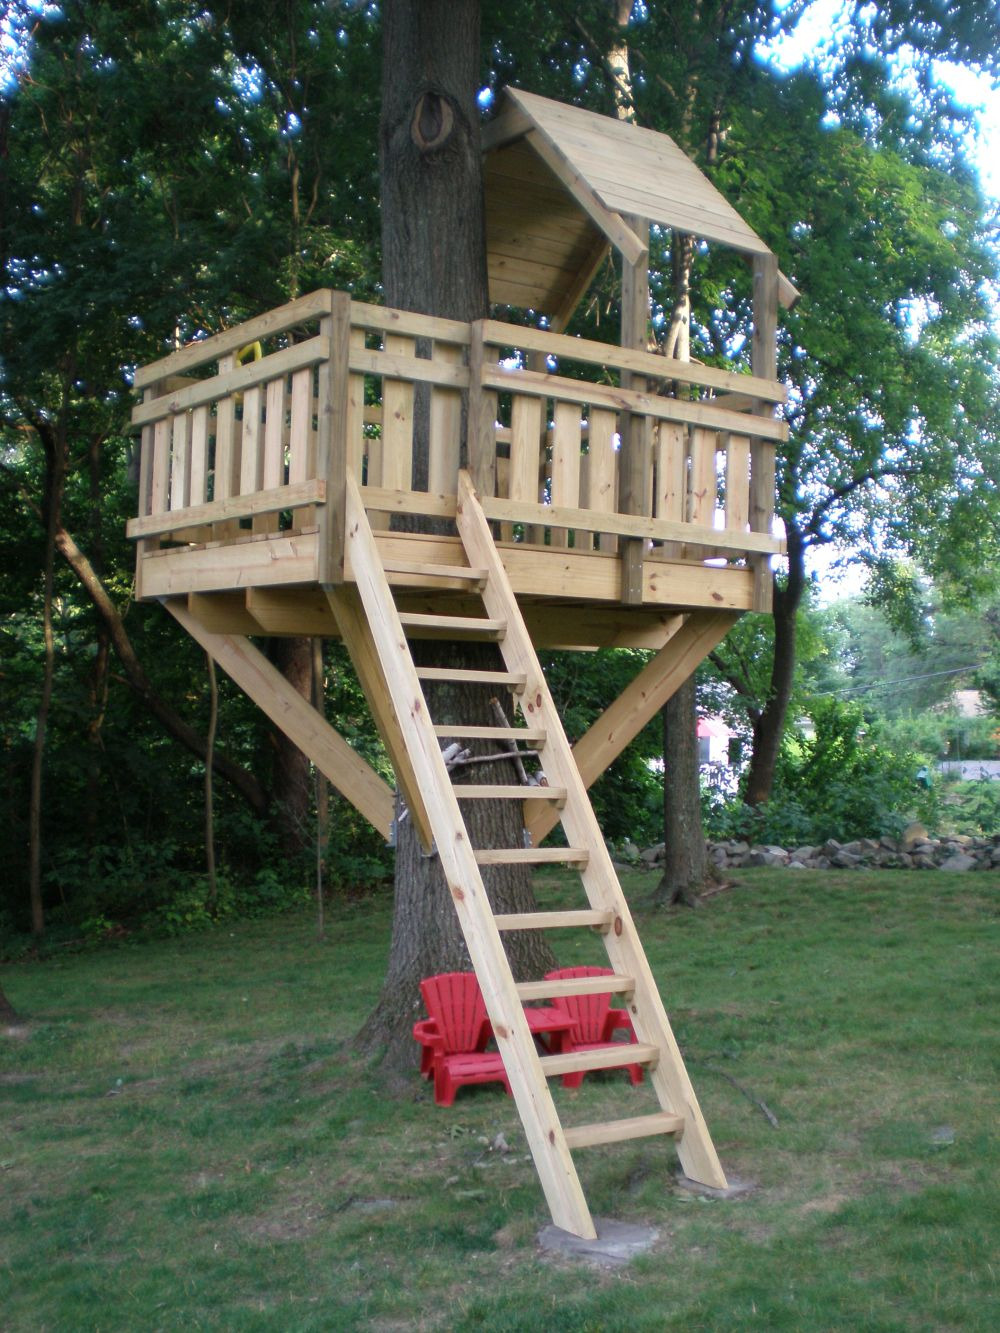 Tree house and how to start building